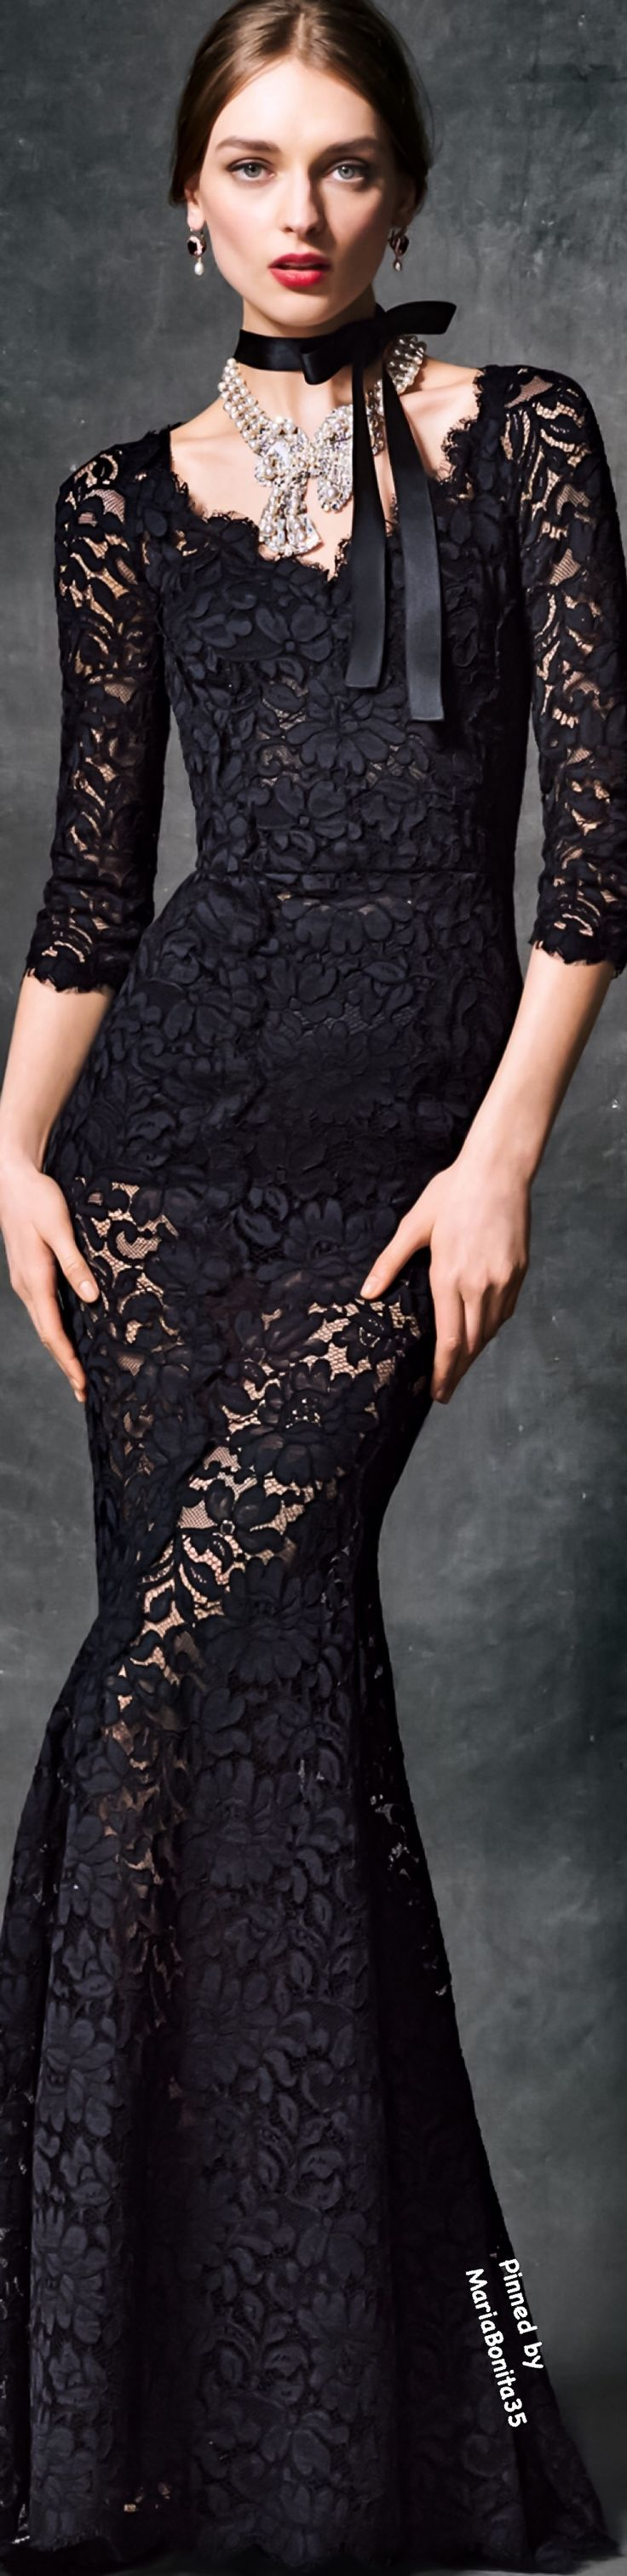 Dolce and Gabbana Fall-Winter 2016/17 Evening Collection